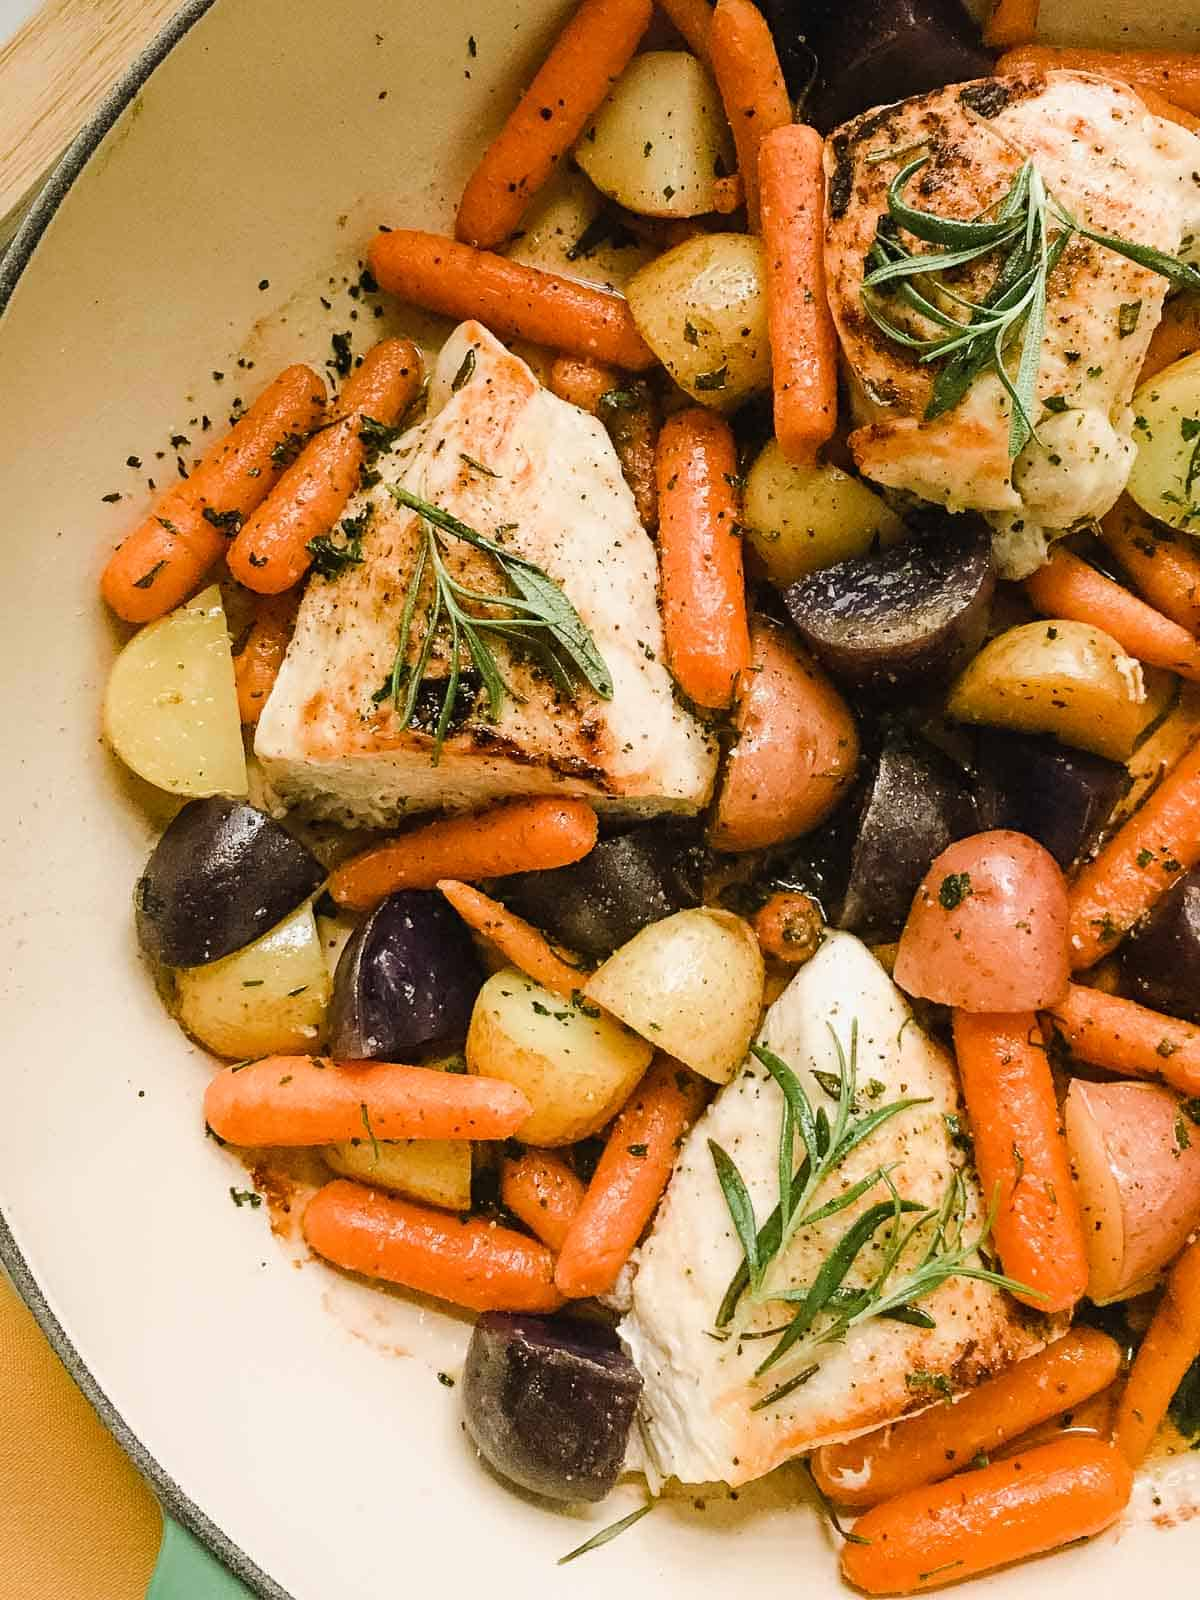 Closeup photo of rosemary chicken with potatoes and carrots.